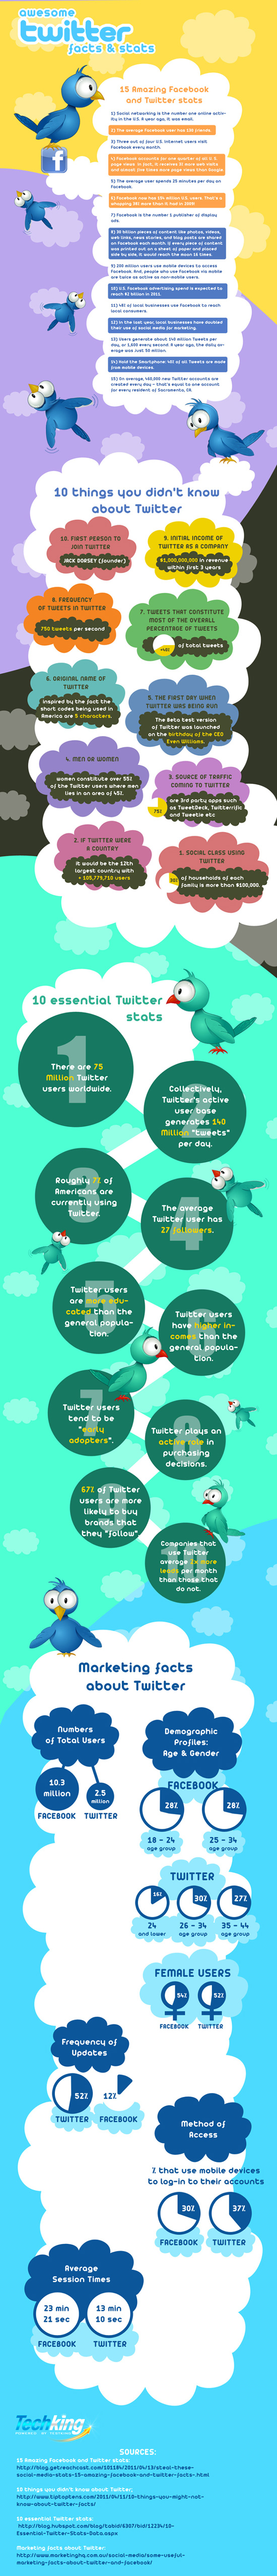 Awesome Yet Revealing Stats And Facts About Twitter (Infographic) 6